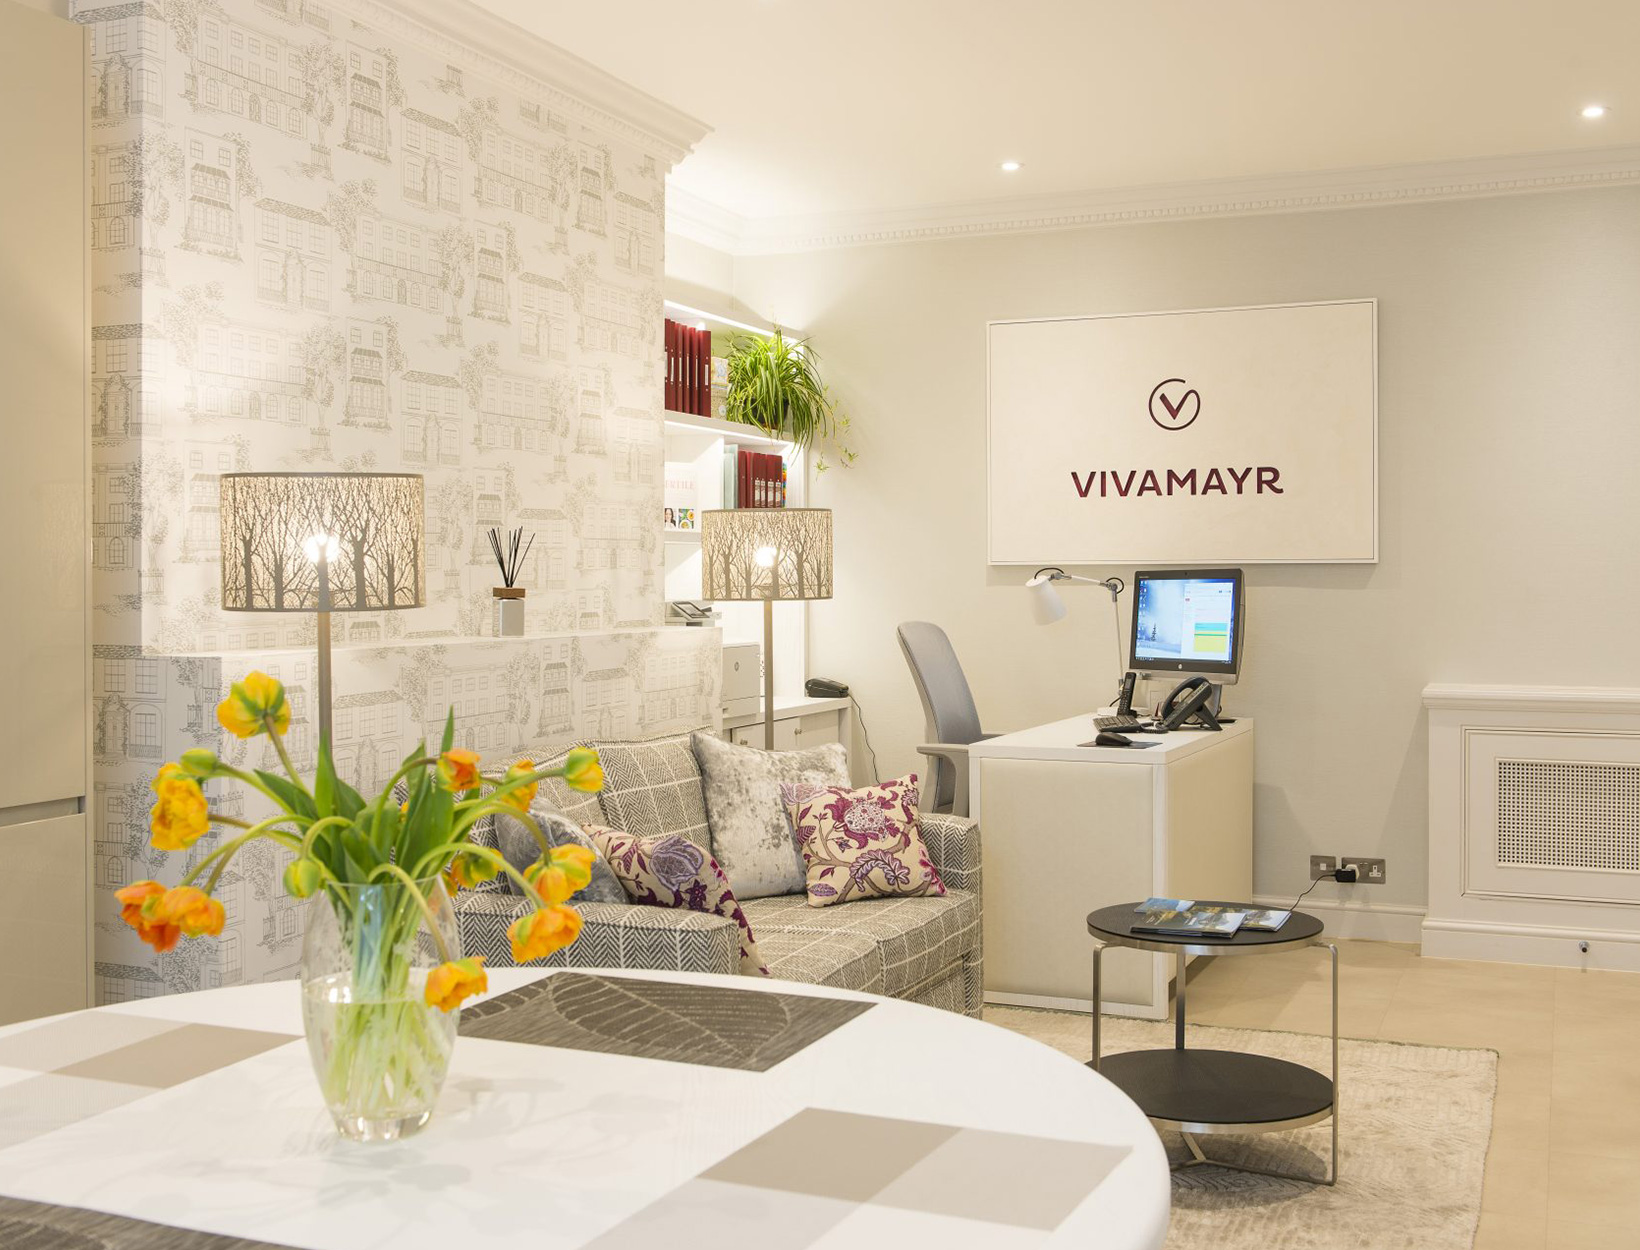 VIVAMAYR London <br><em>Marylebone, London</em>